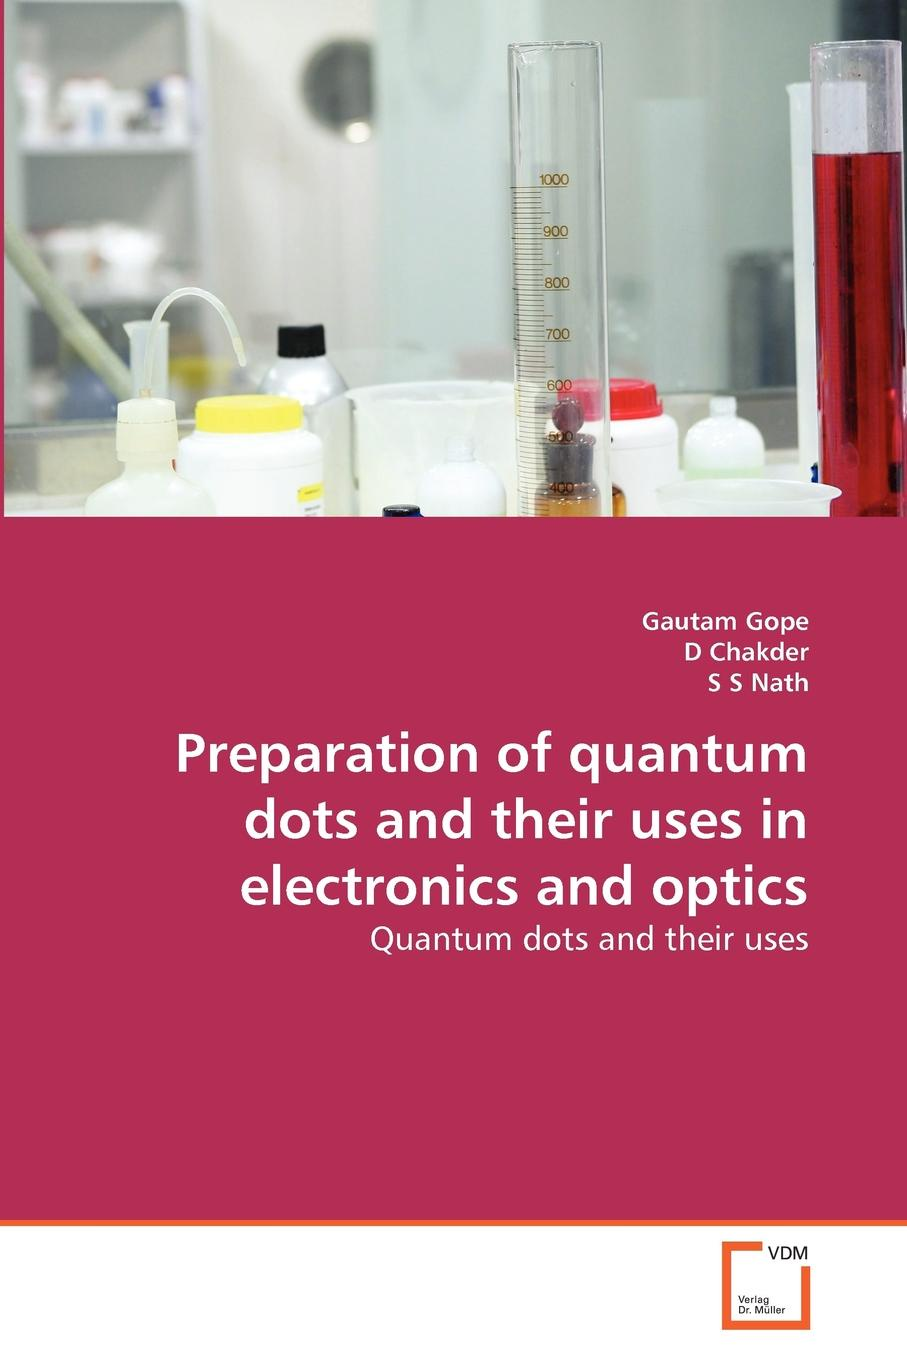 Gautam Gope, D Chakder, S S Nath Preparation of quantum dots and their uses in electronics and optics wolfgang schleich p quantum optics in phase space isbn 9783527635009